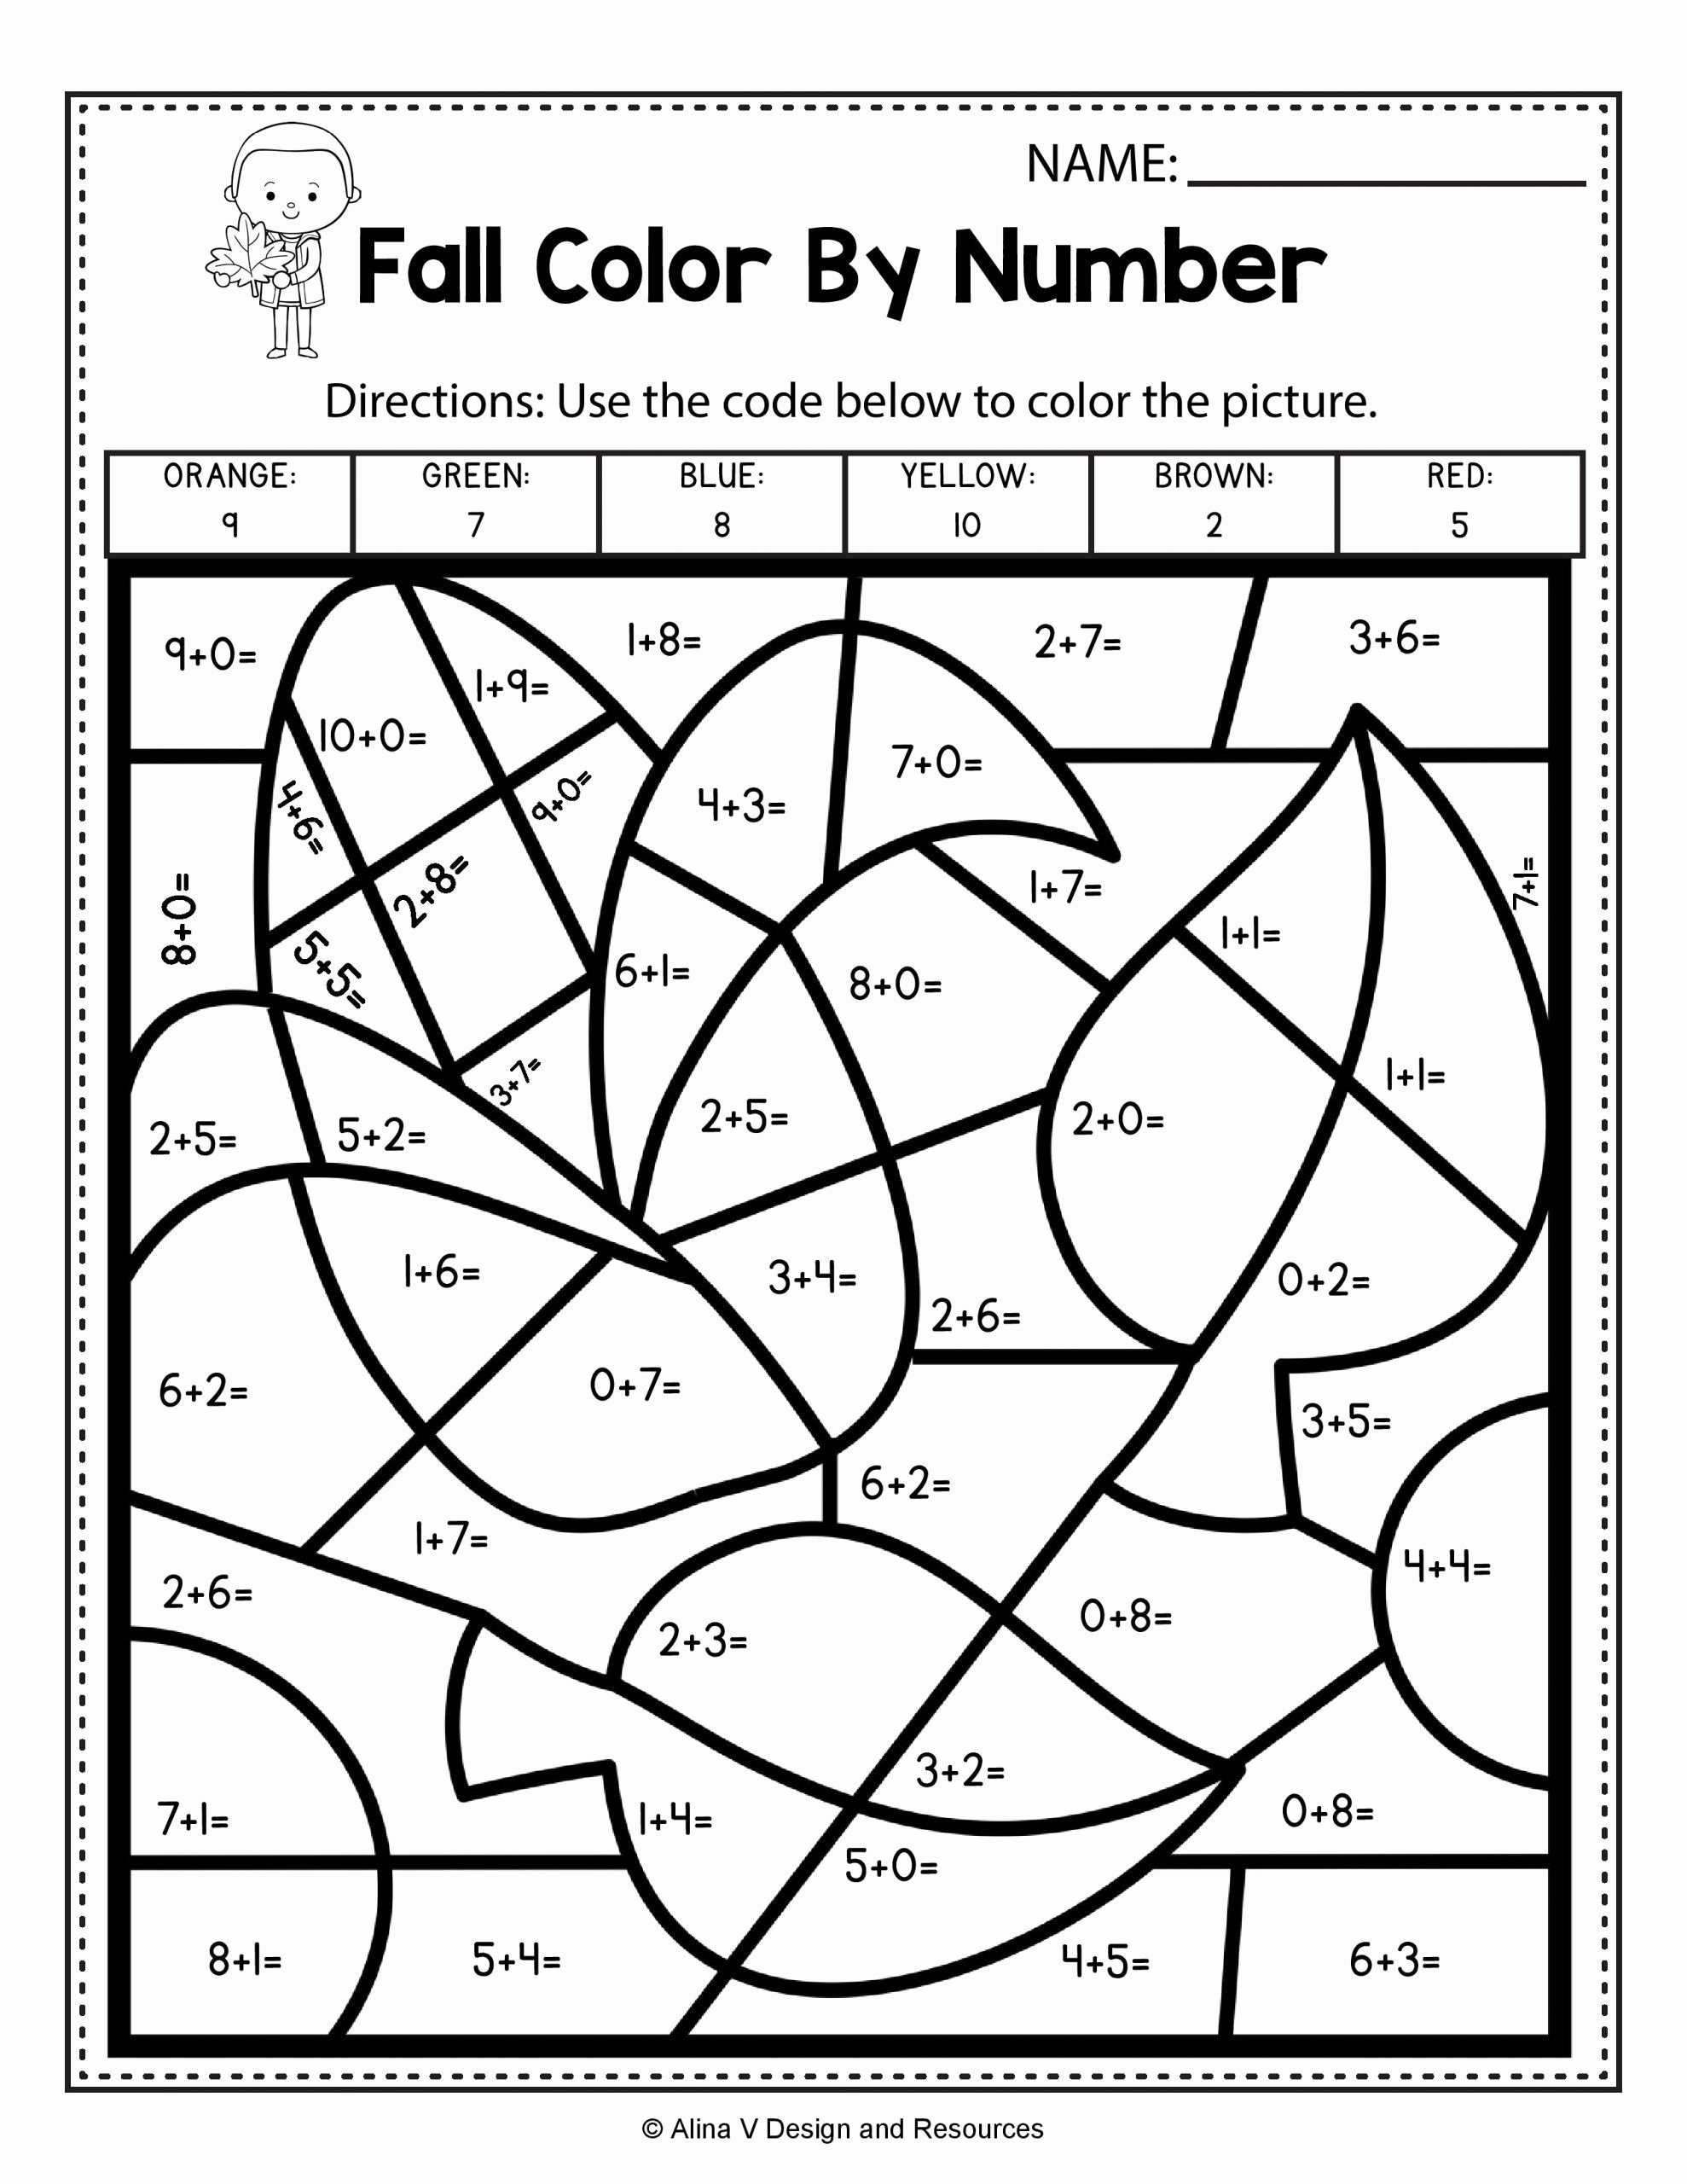 Math Coloring Worksheets 1st Grade Best Of Math Coloring Worksheets Dialogueeurope 1st Grade Time Book